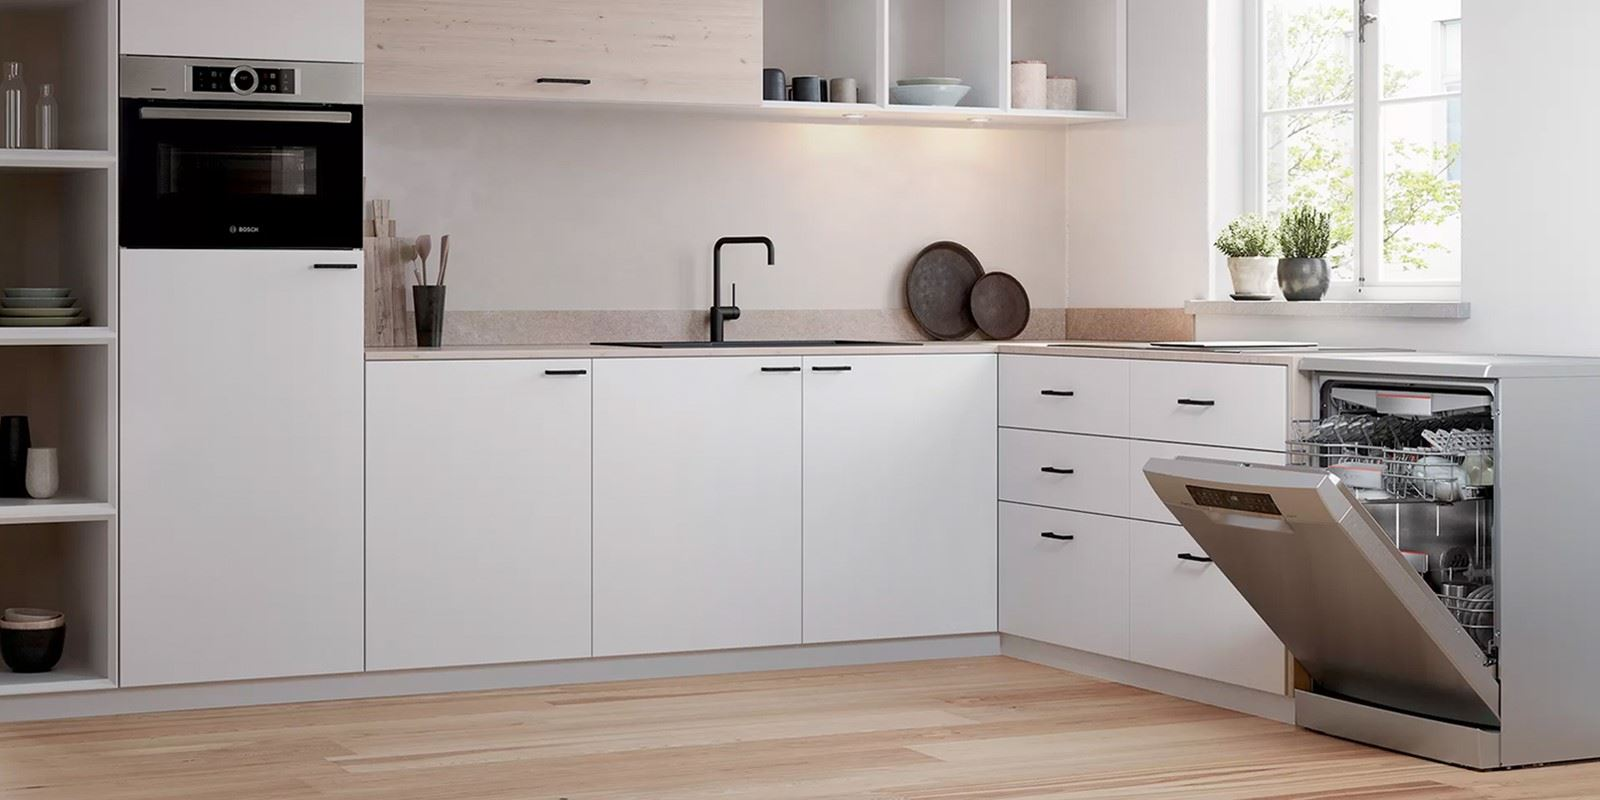 Bosch Kitchen Lifestyle